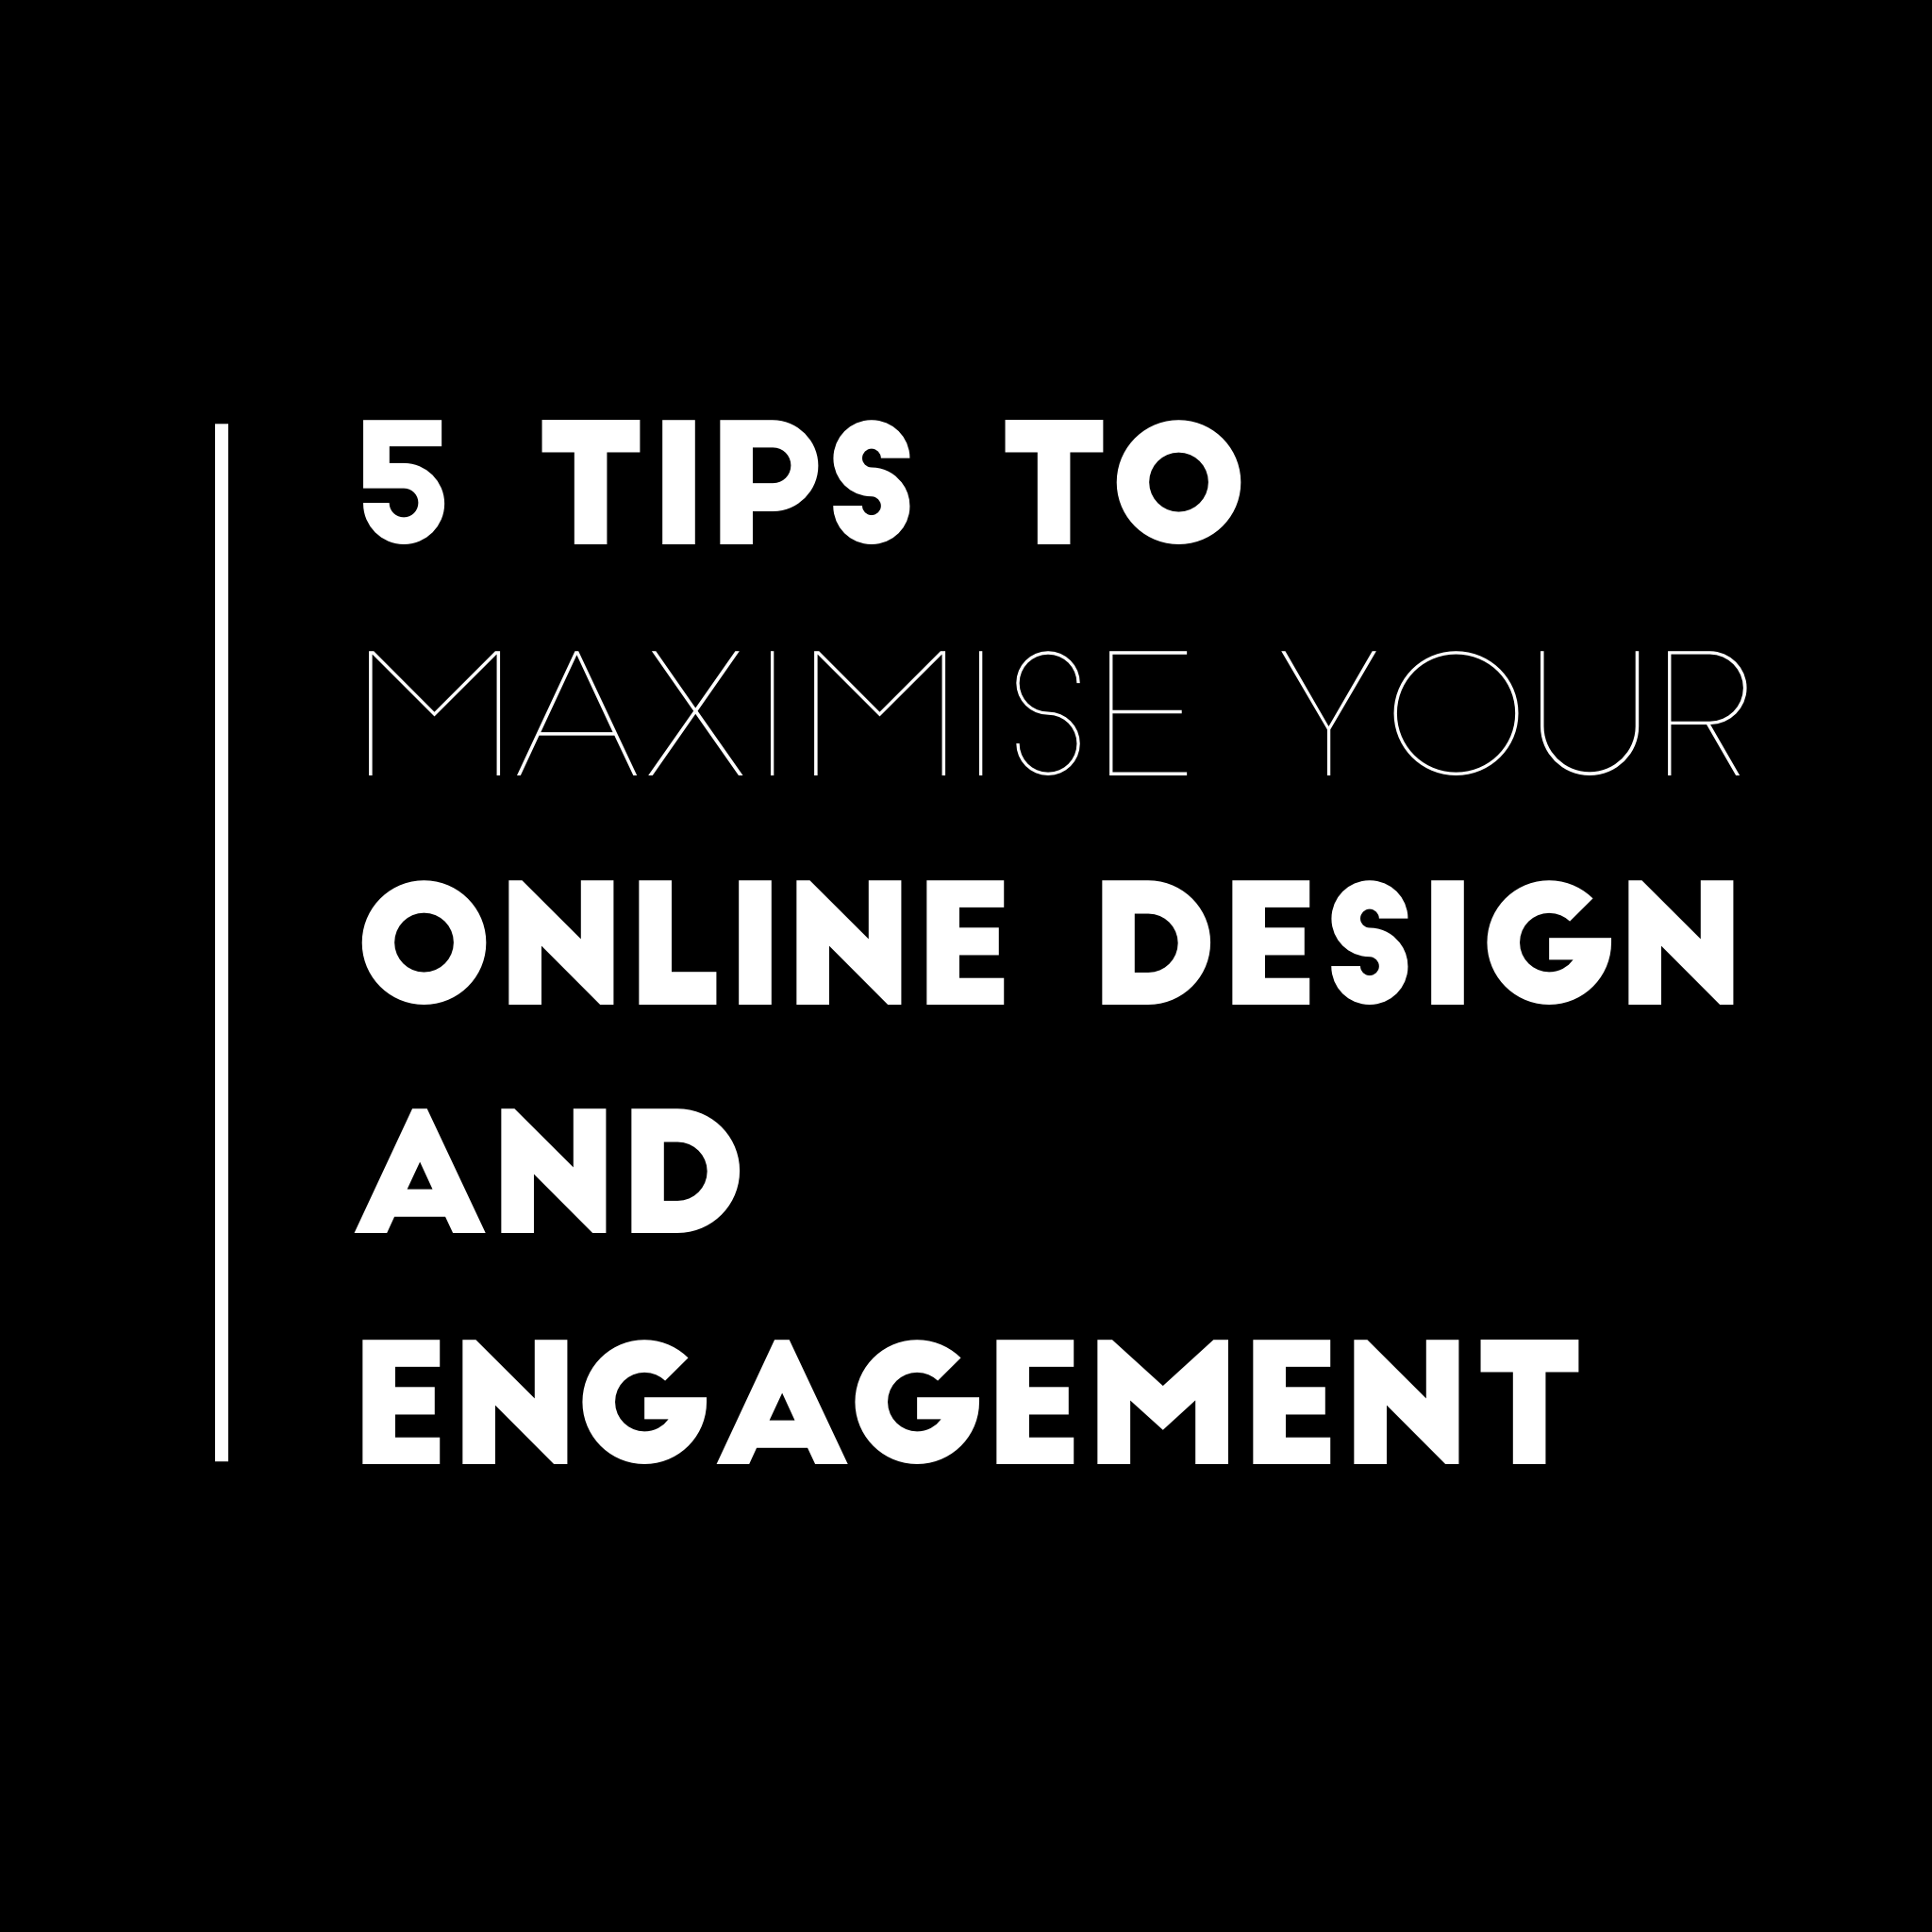 5 Tips to Maximise Your Online Design and Engagement